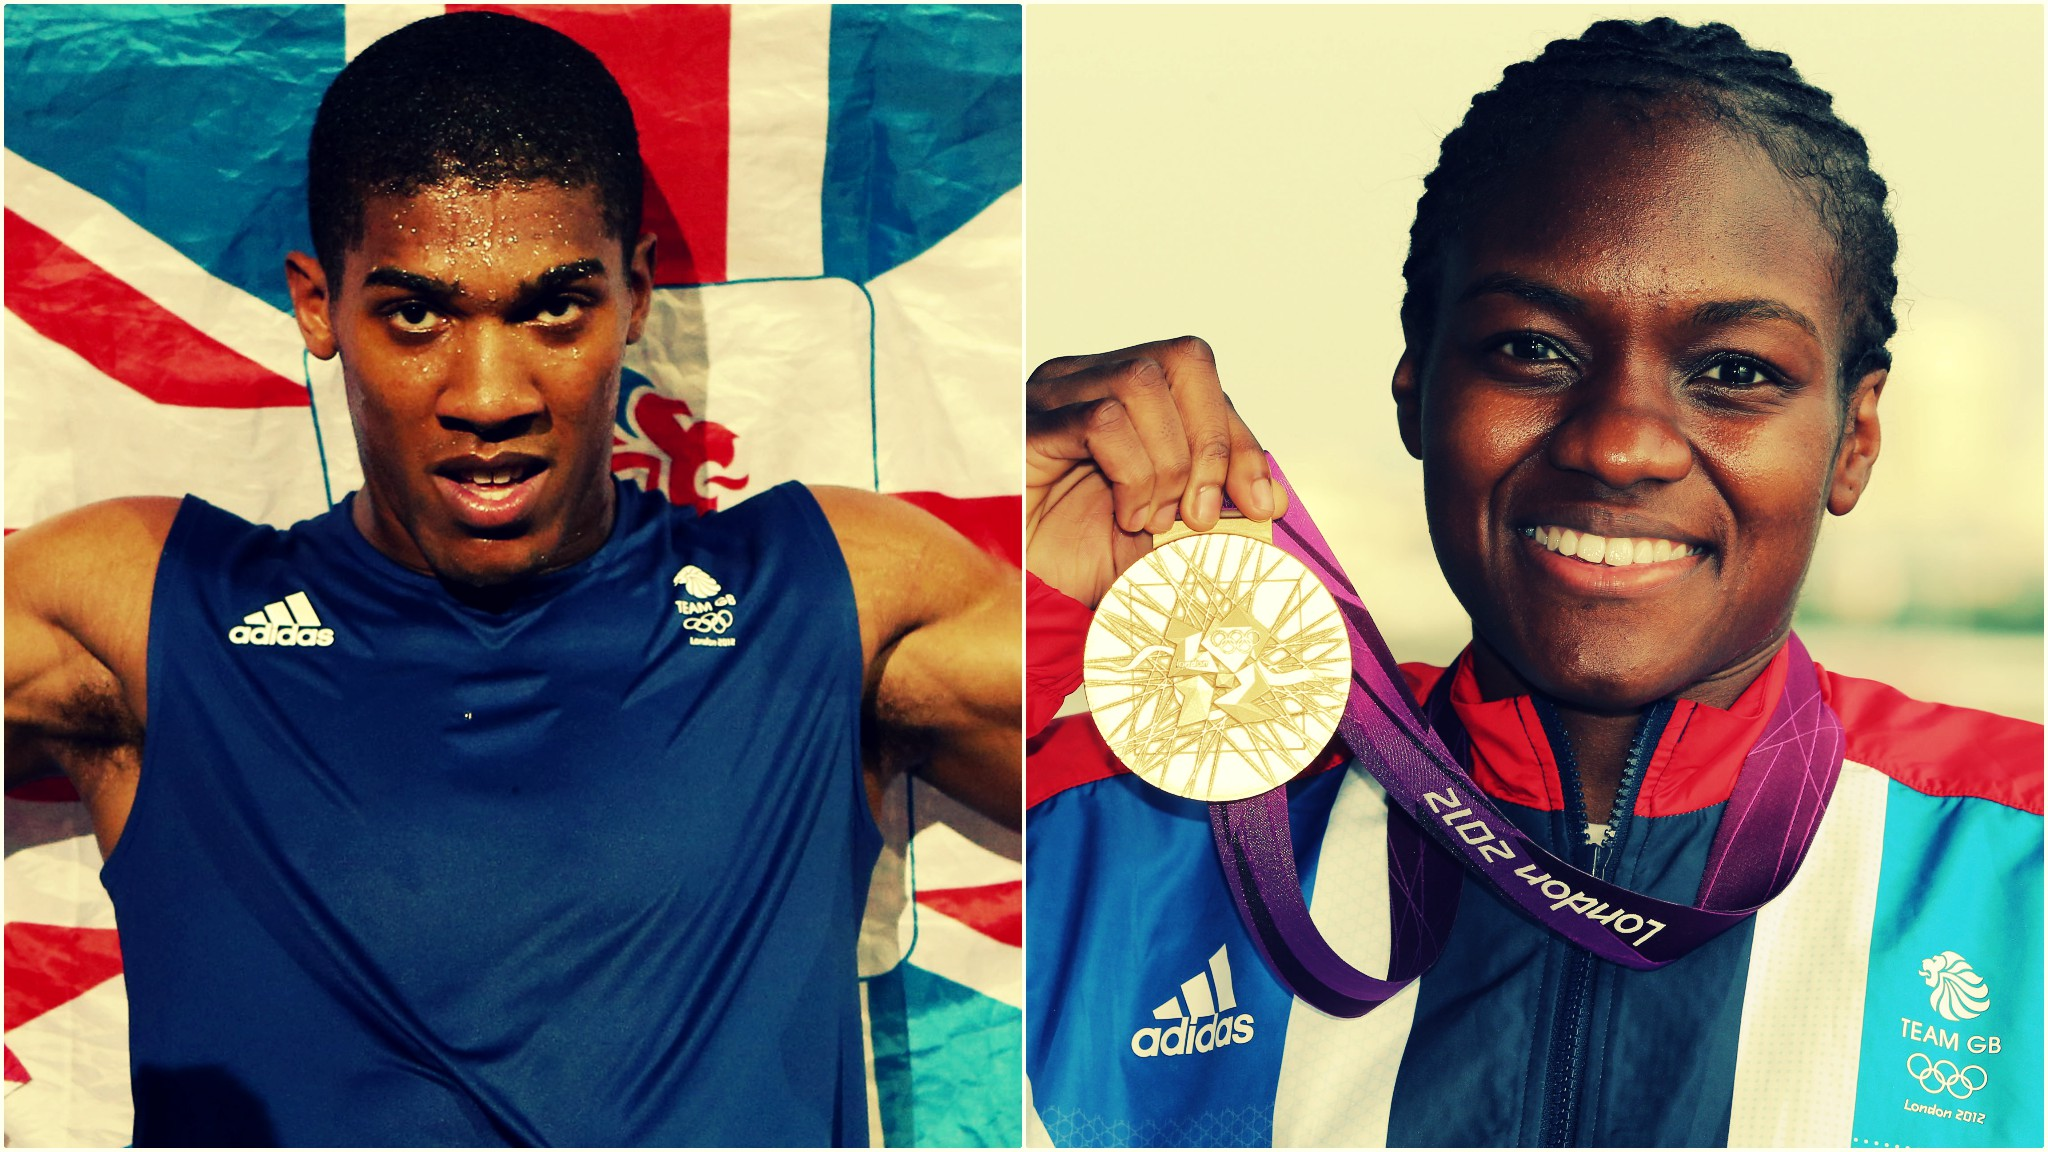 Boxing's Olympic risk is 'unprecedented' says head of England Boxing